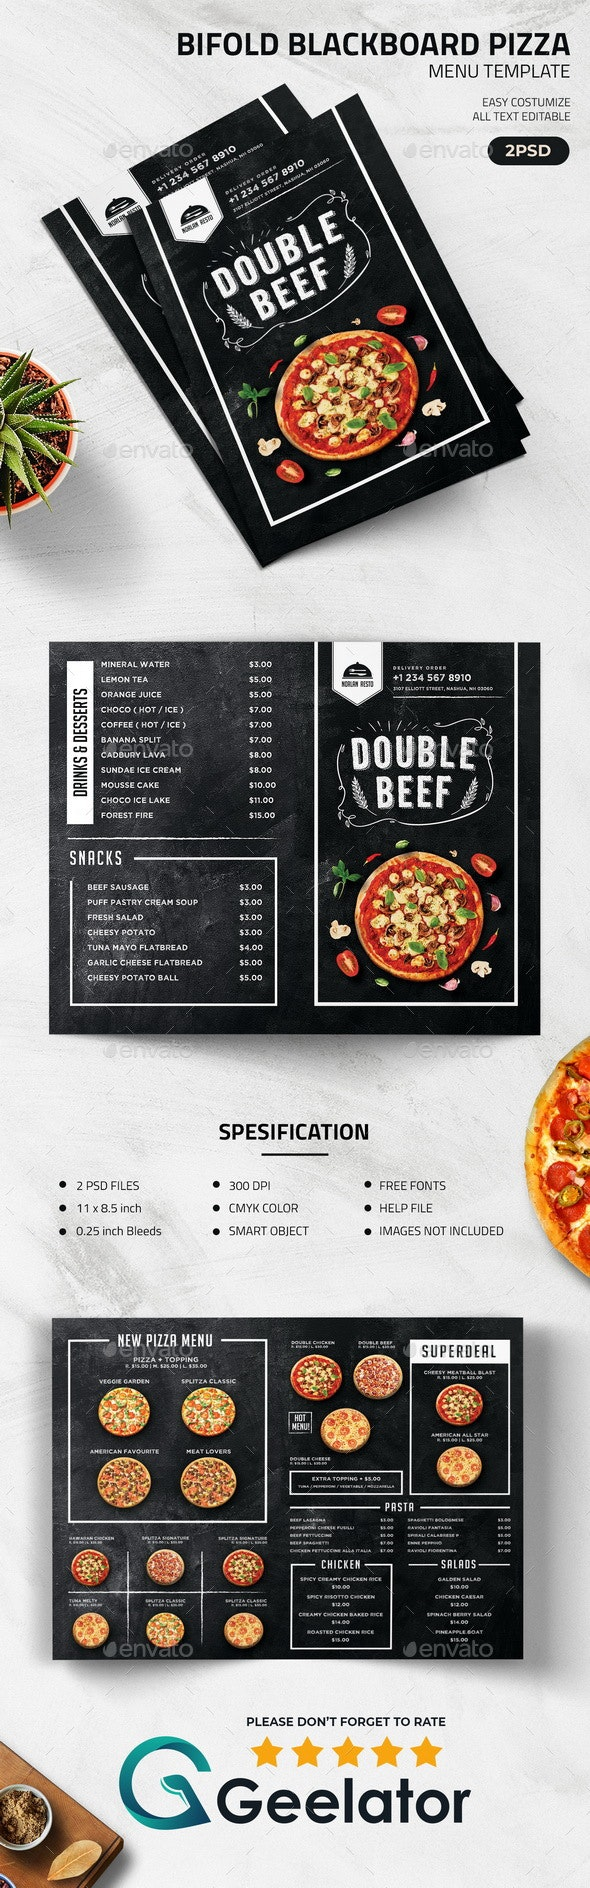 Bifold Blackboard Pizza Menu Template - CD & DVD Artwork Print Templates